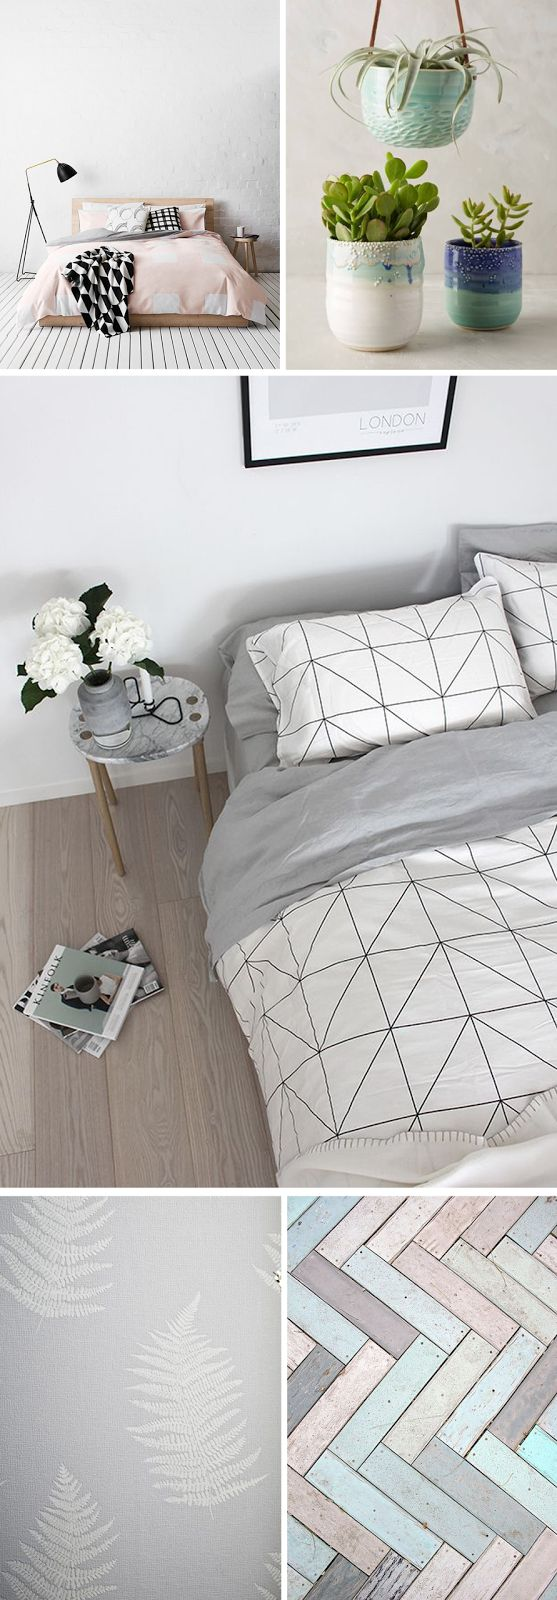 Calm and relaxing bedroom interiors help keep your mind at rest and your body revived.